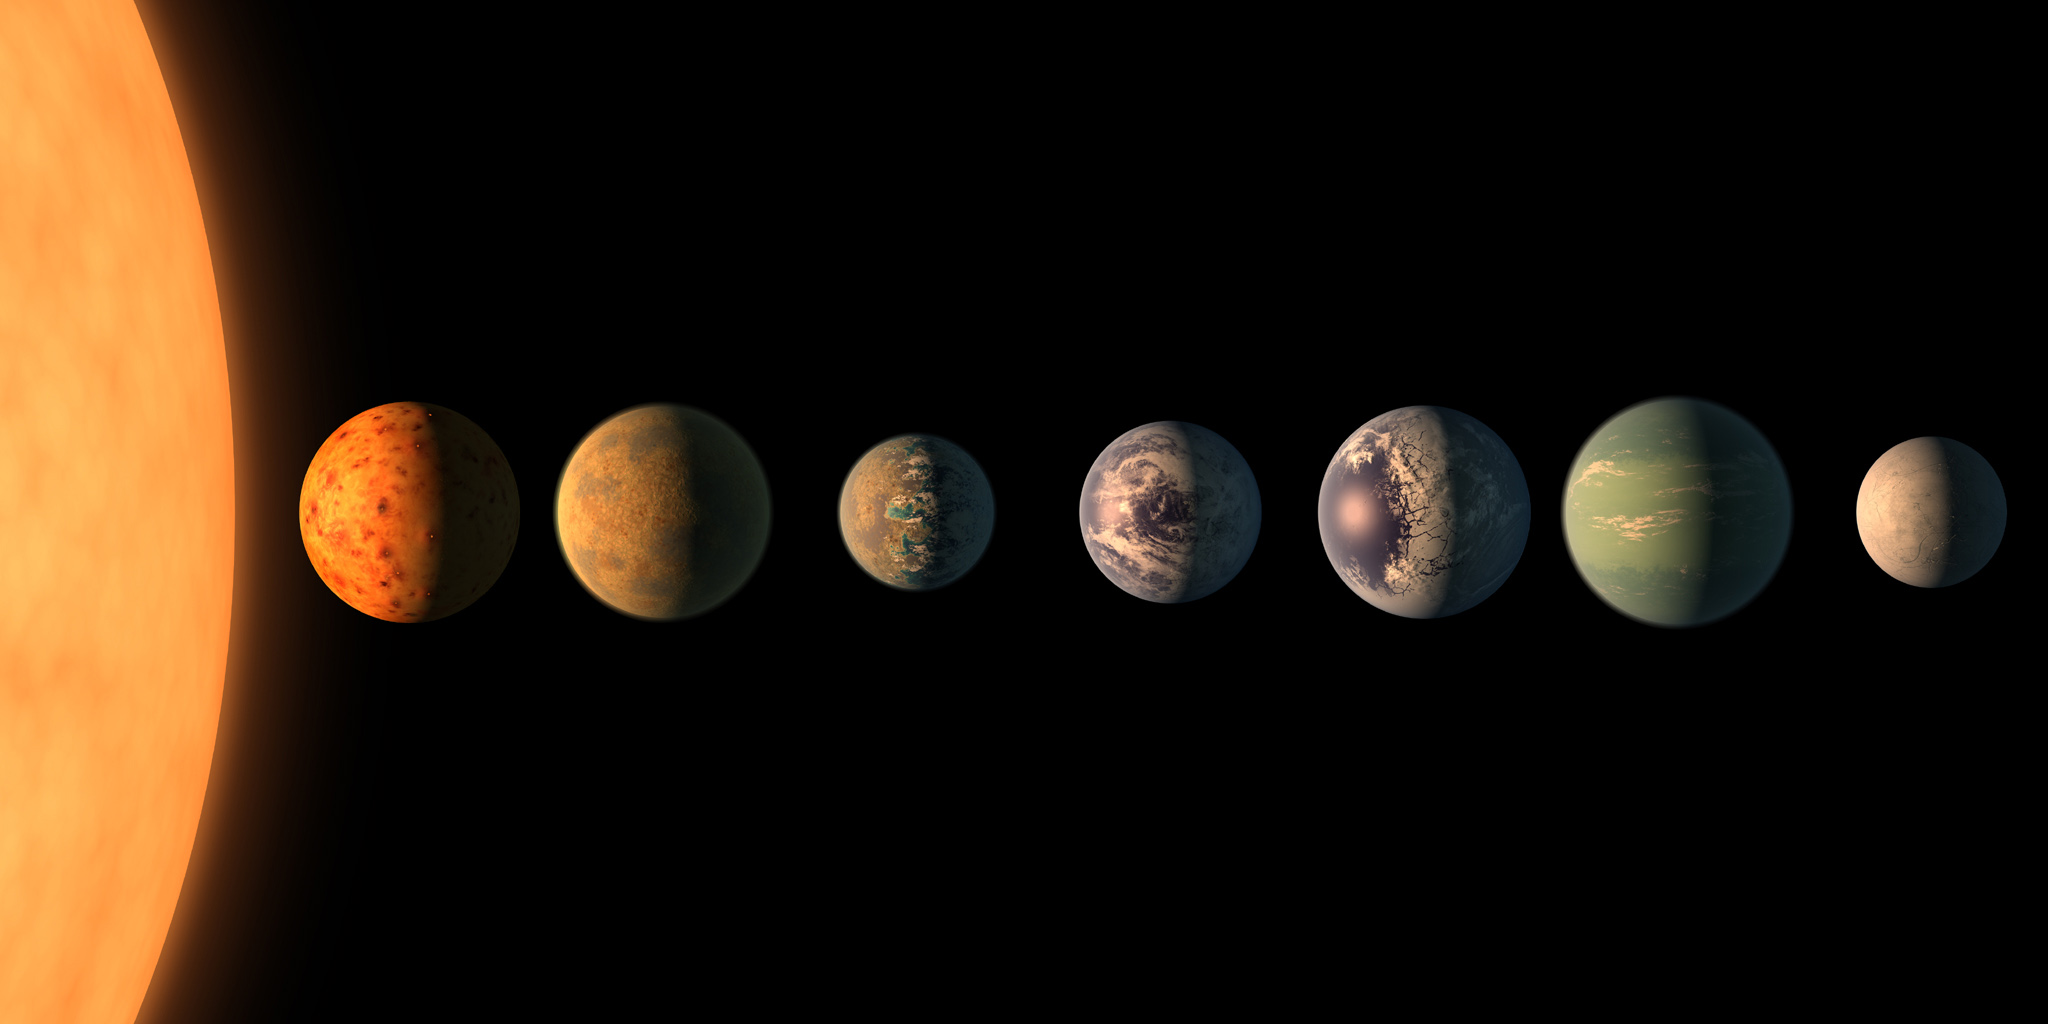 Recreation of the Trappist-1 system